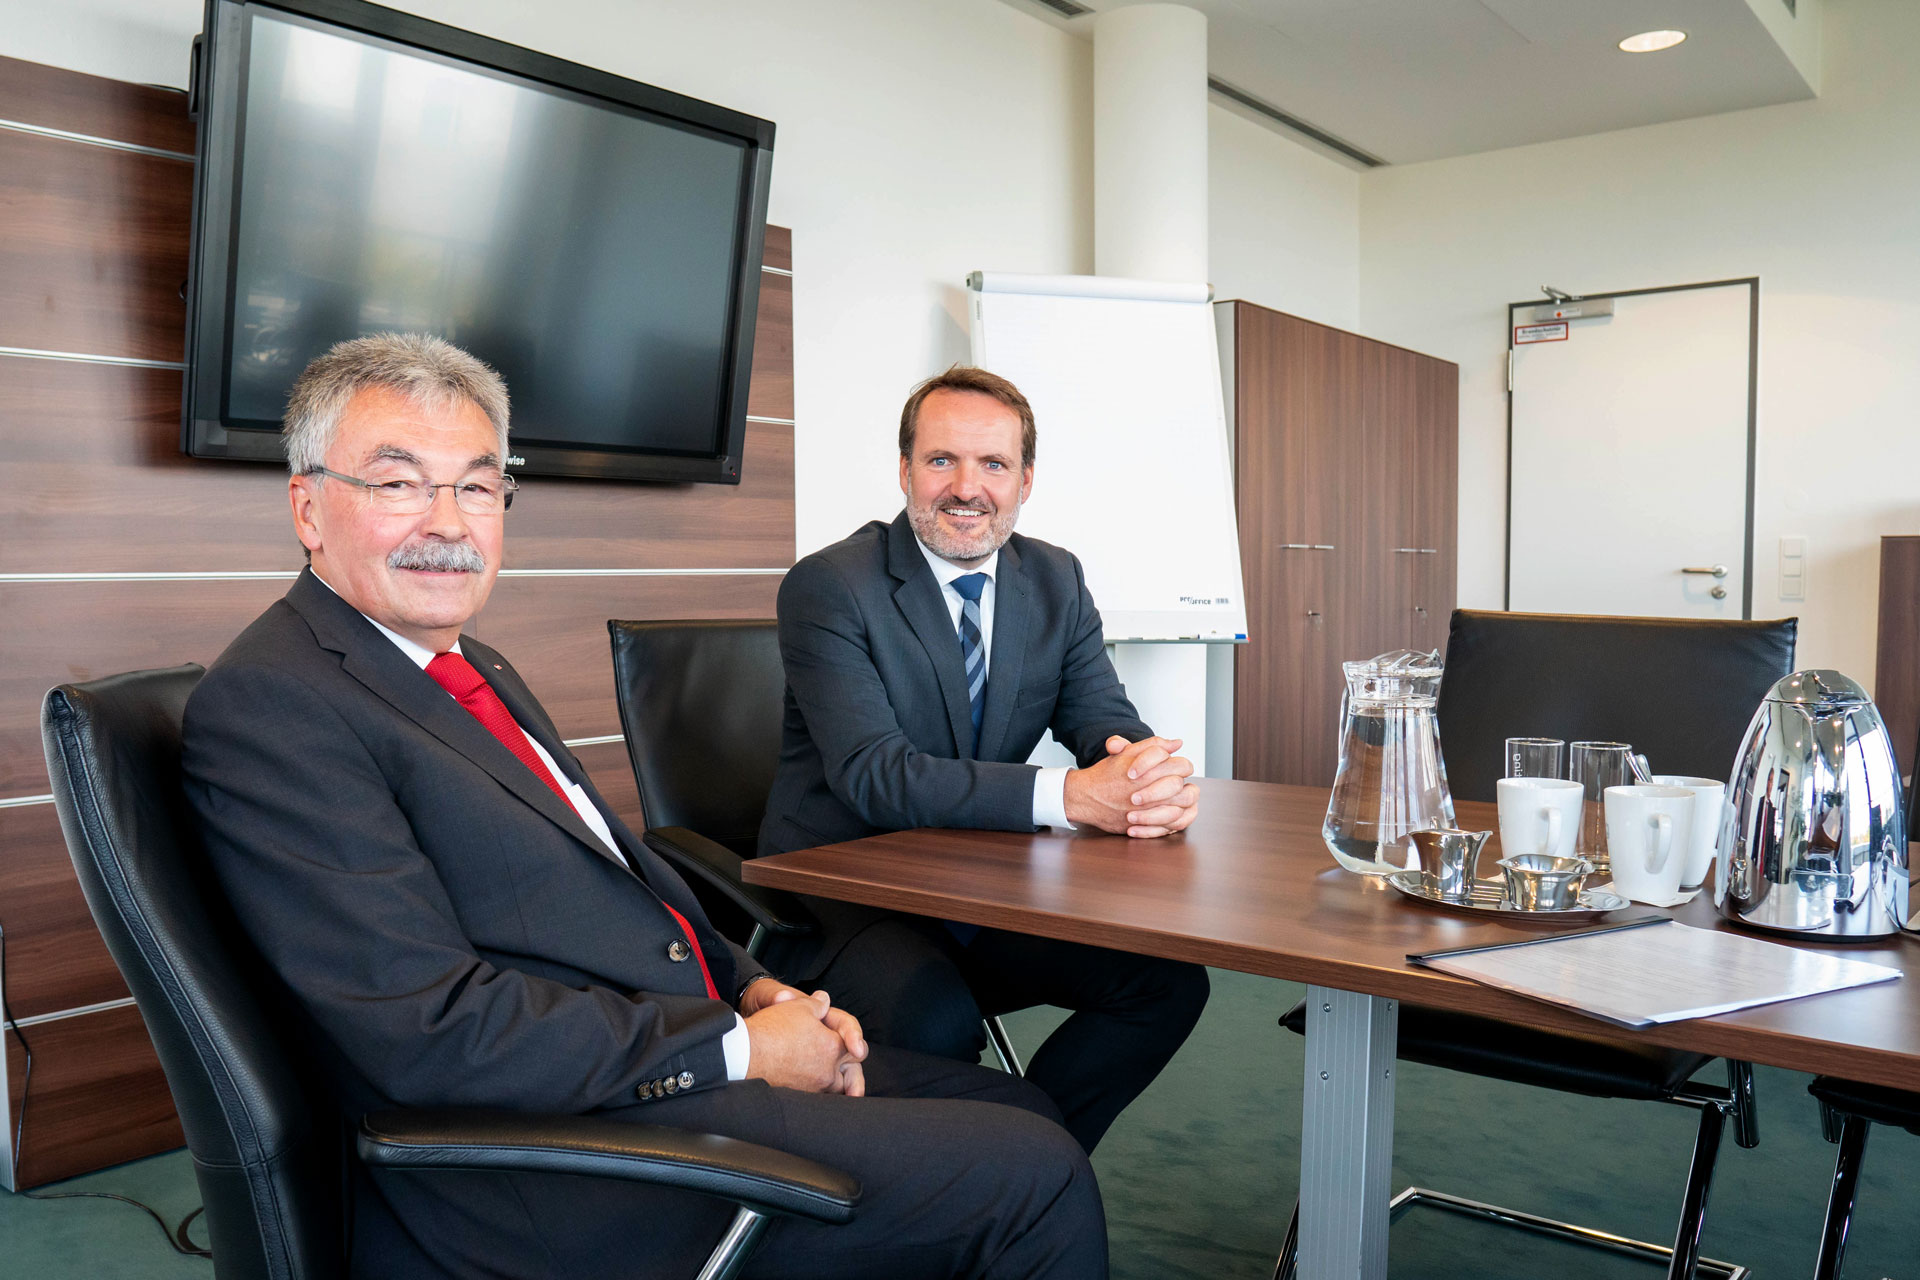 Generalleutnant a.D. Manfred Hofmann und BwConsulting-CEO Philip von Haehling